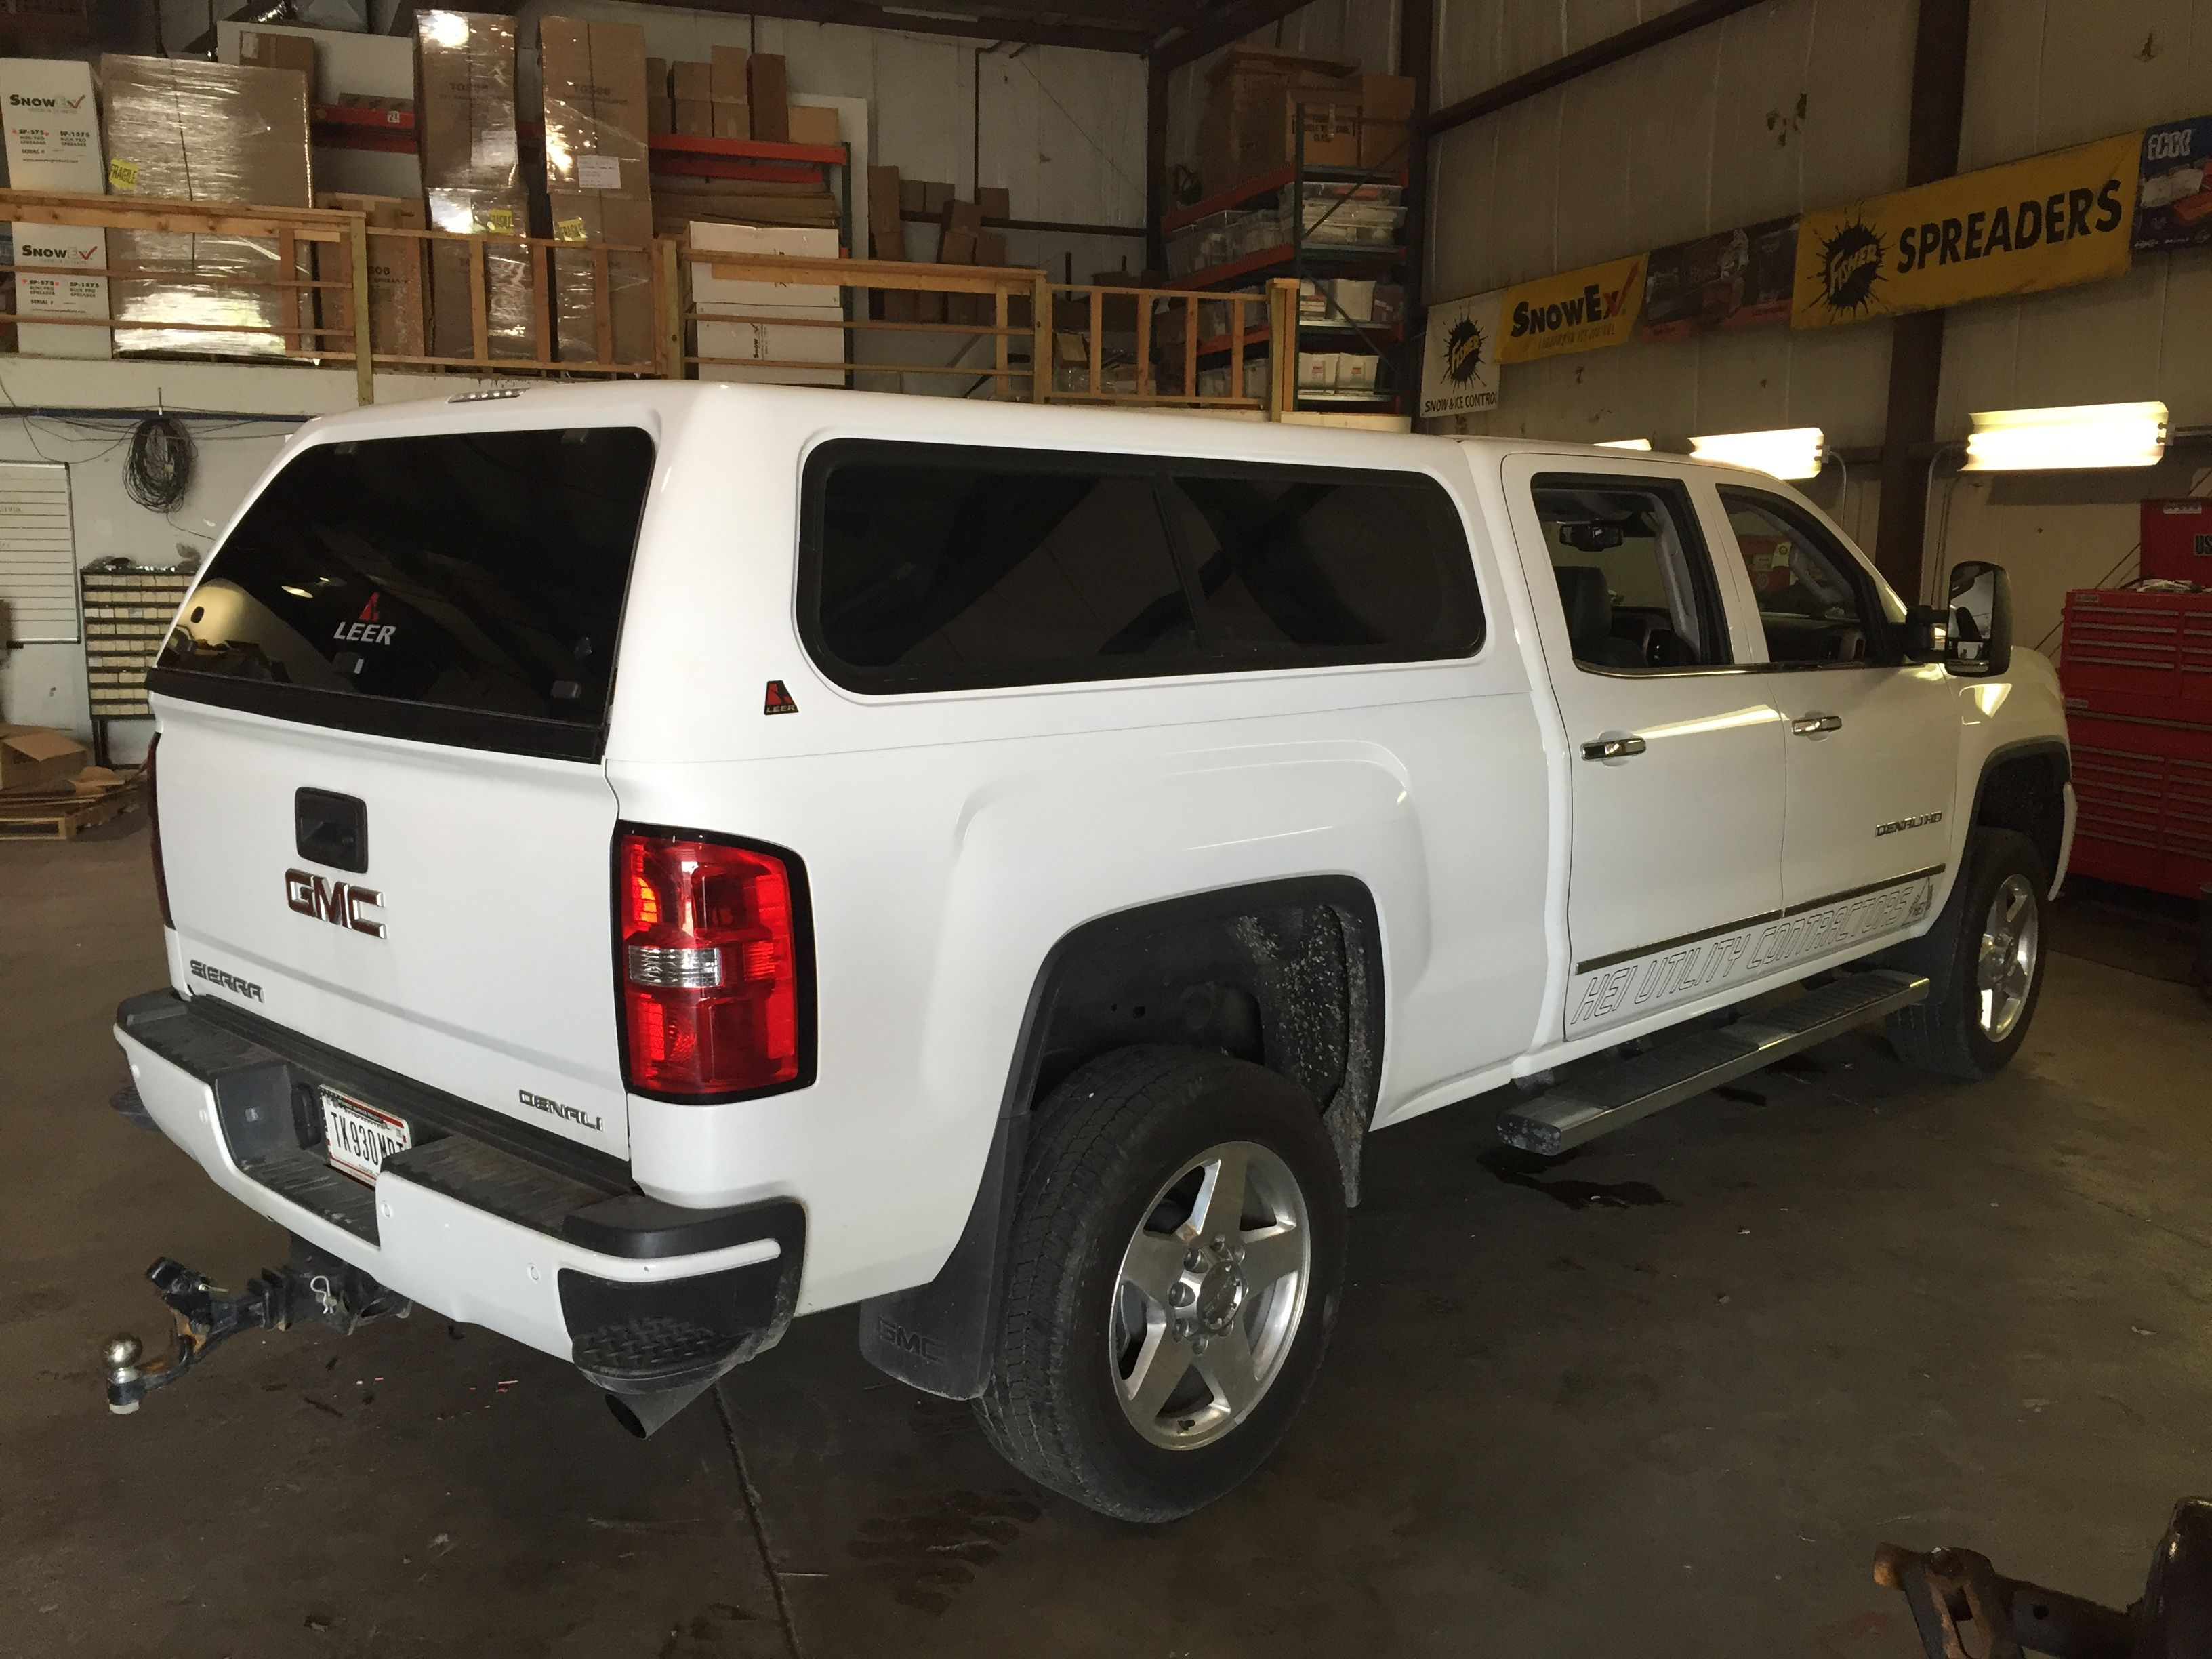 White Gmc Sierra Denali With Leer Truck Cap Installed At Cpw Stuff In Tinley Park Il